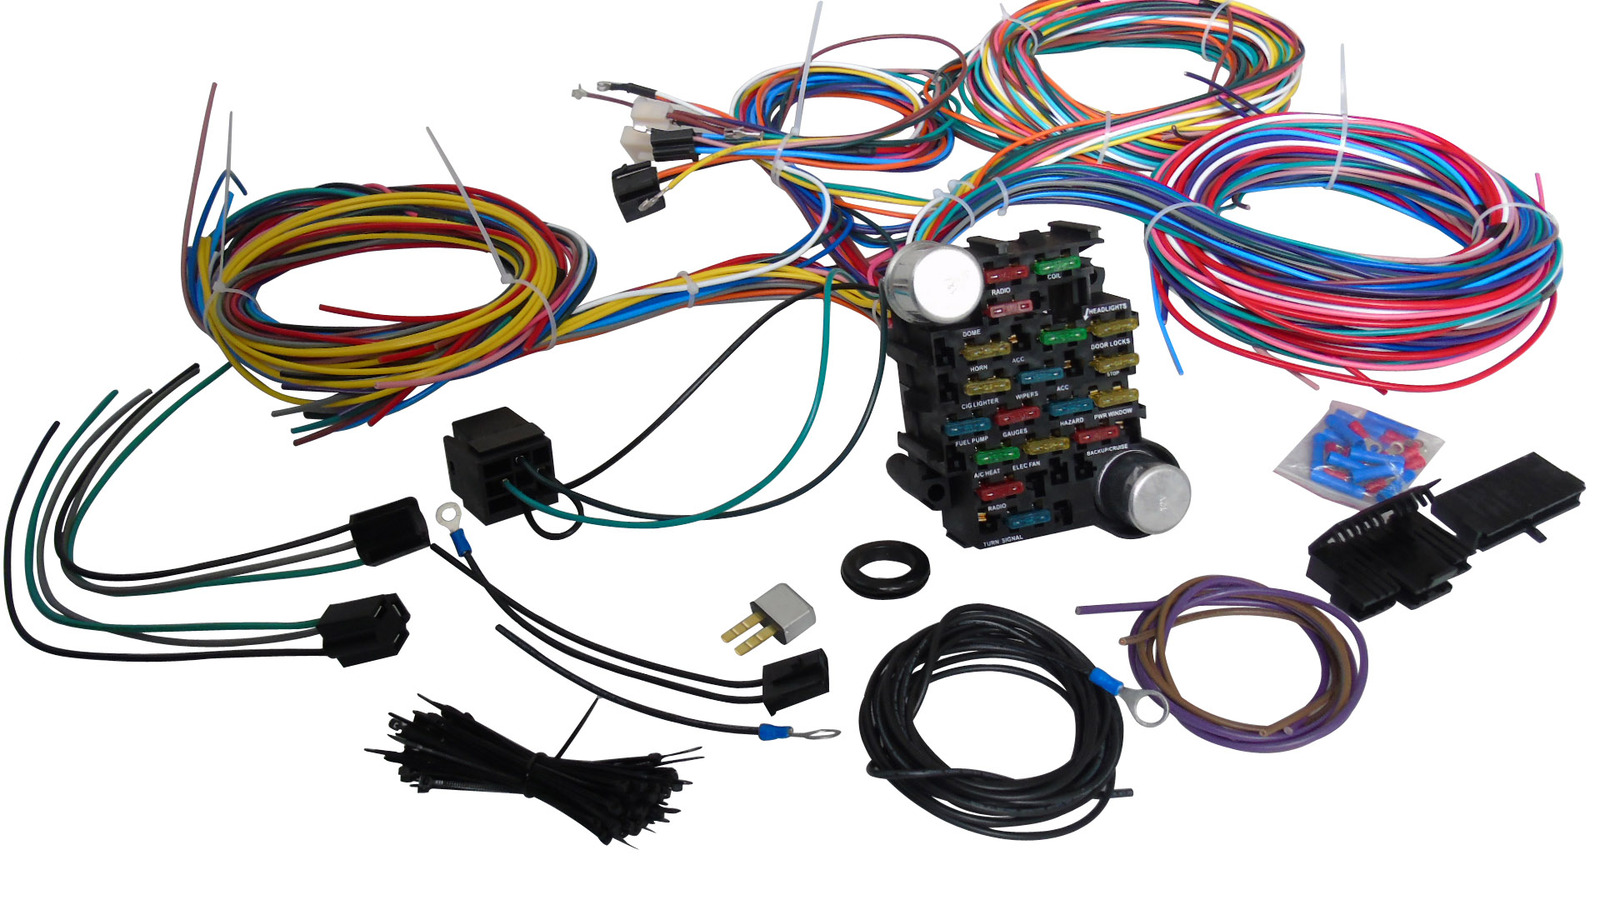 1961 Chevy Pickup Wiring Harness Library 1969 Truck Engine 82 Smart Diagrams U2022 1982